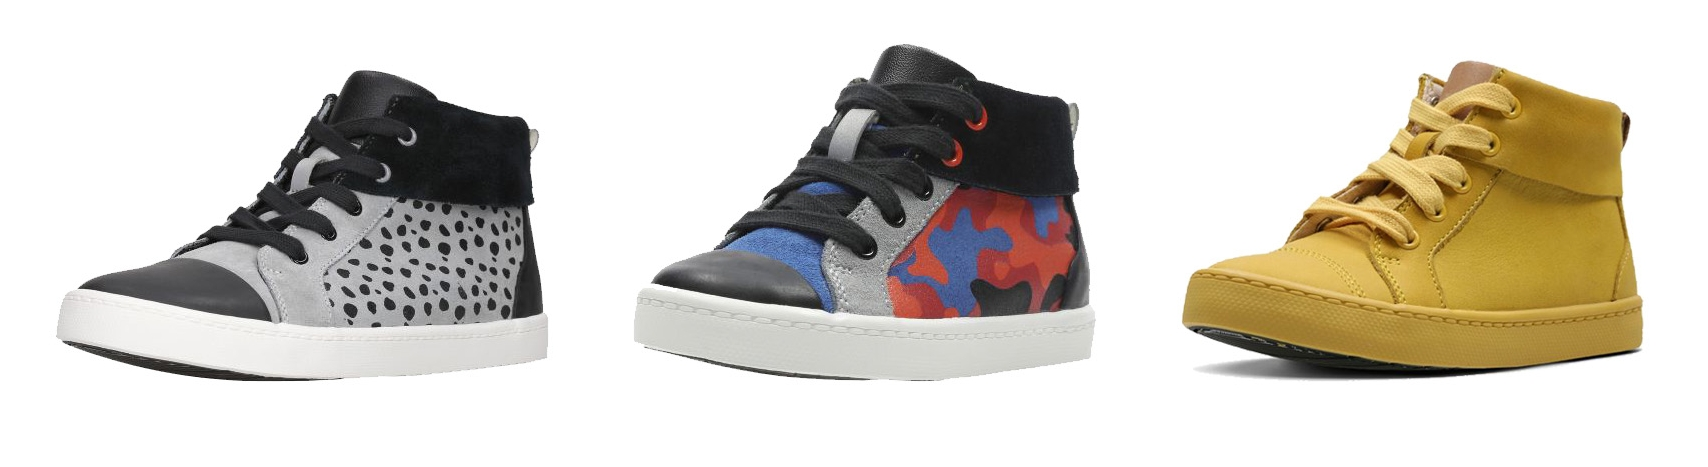 The Clarks City Vine Hi and City Vine Jungle. Available to buy at  www.clarks.co.uk